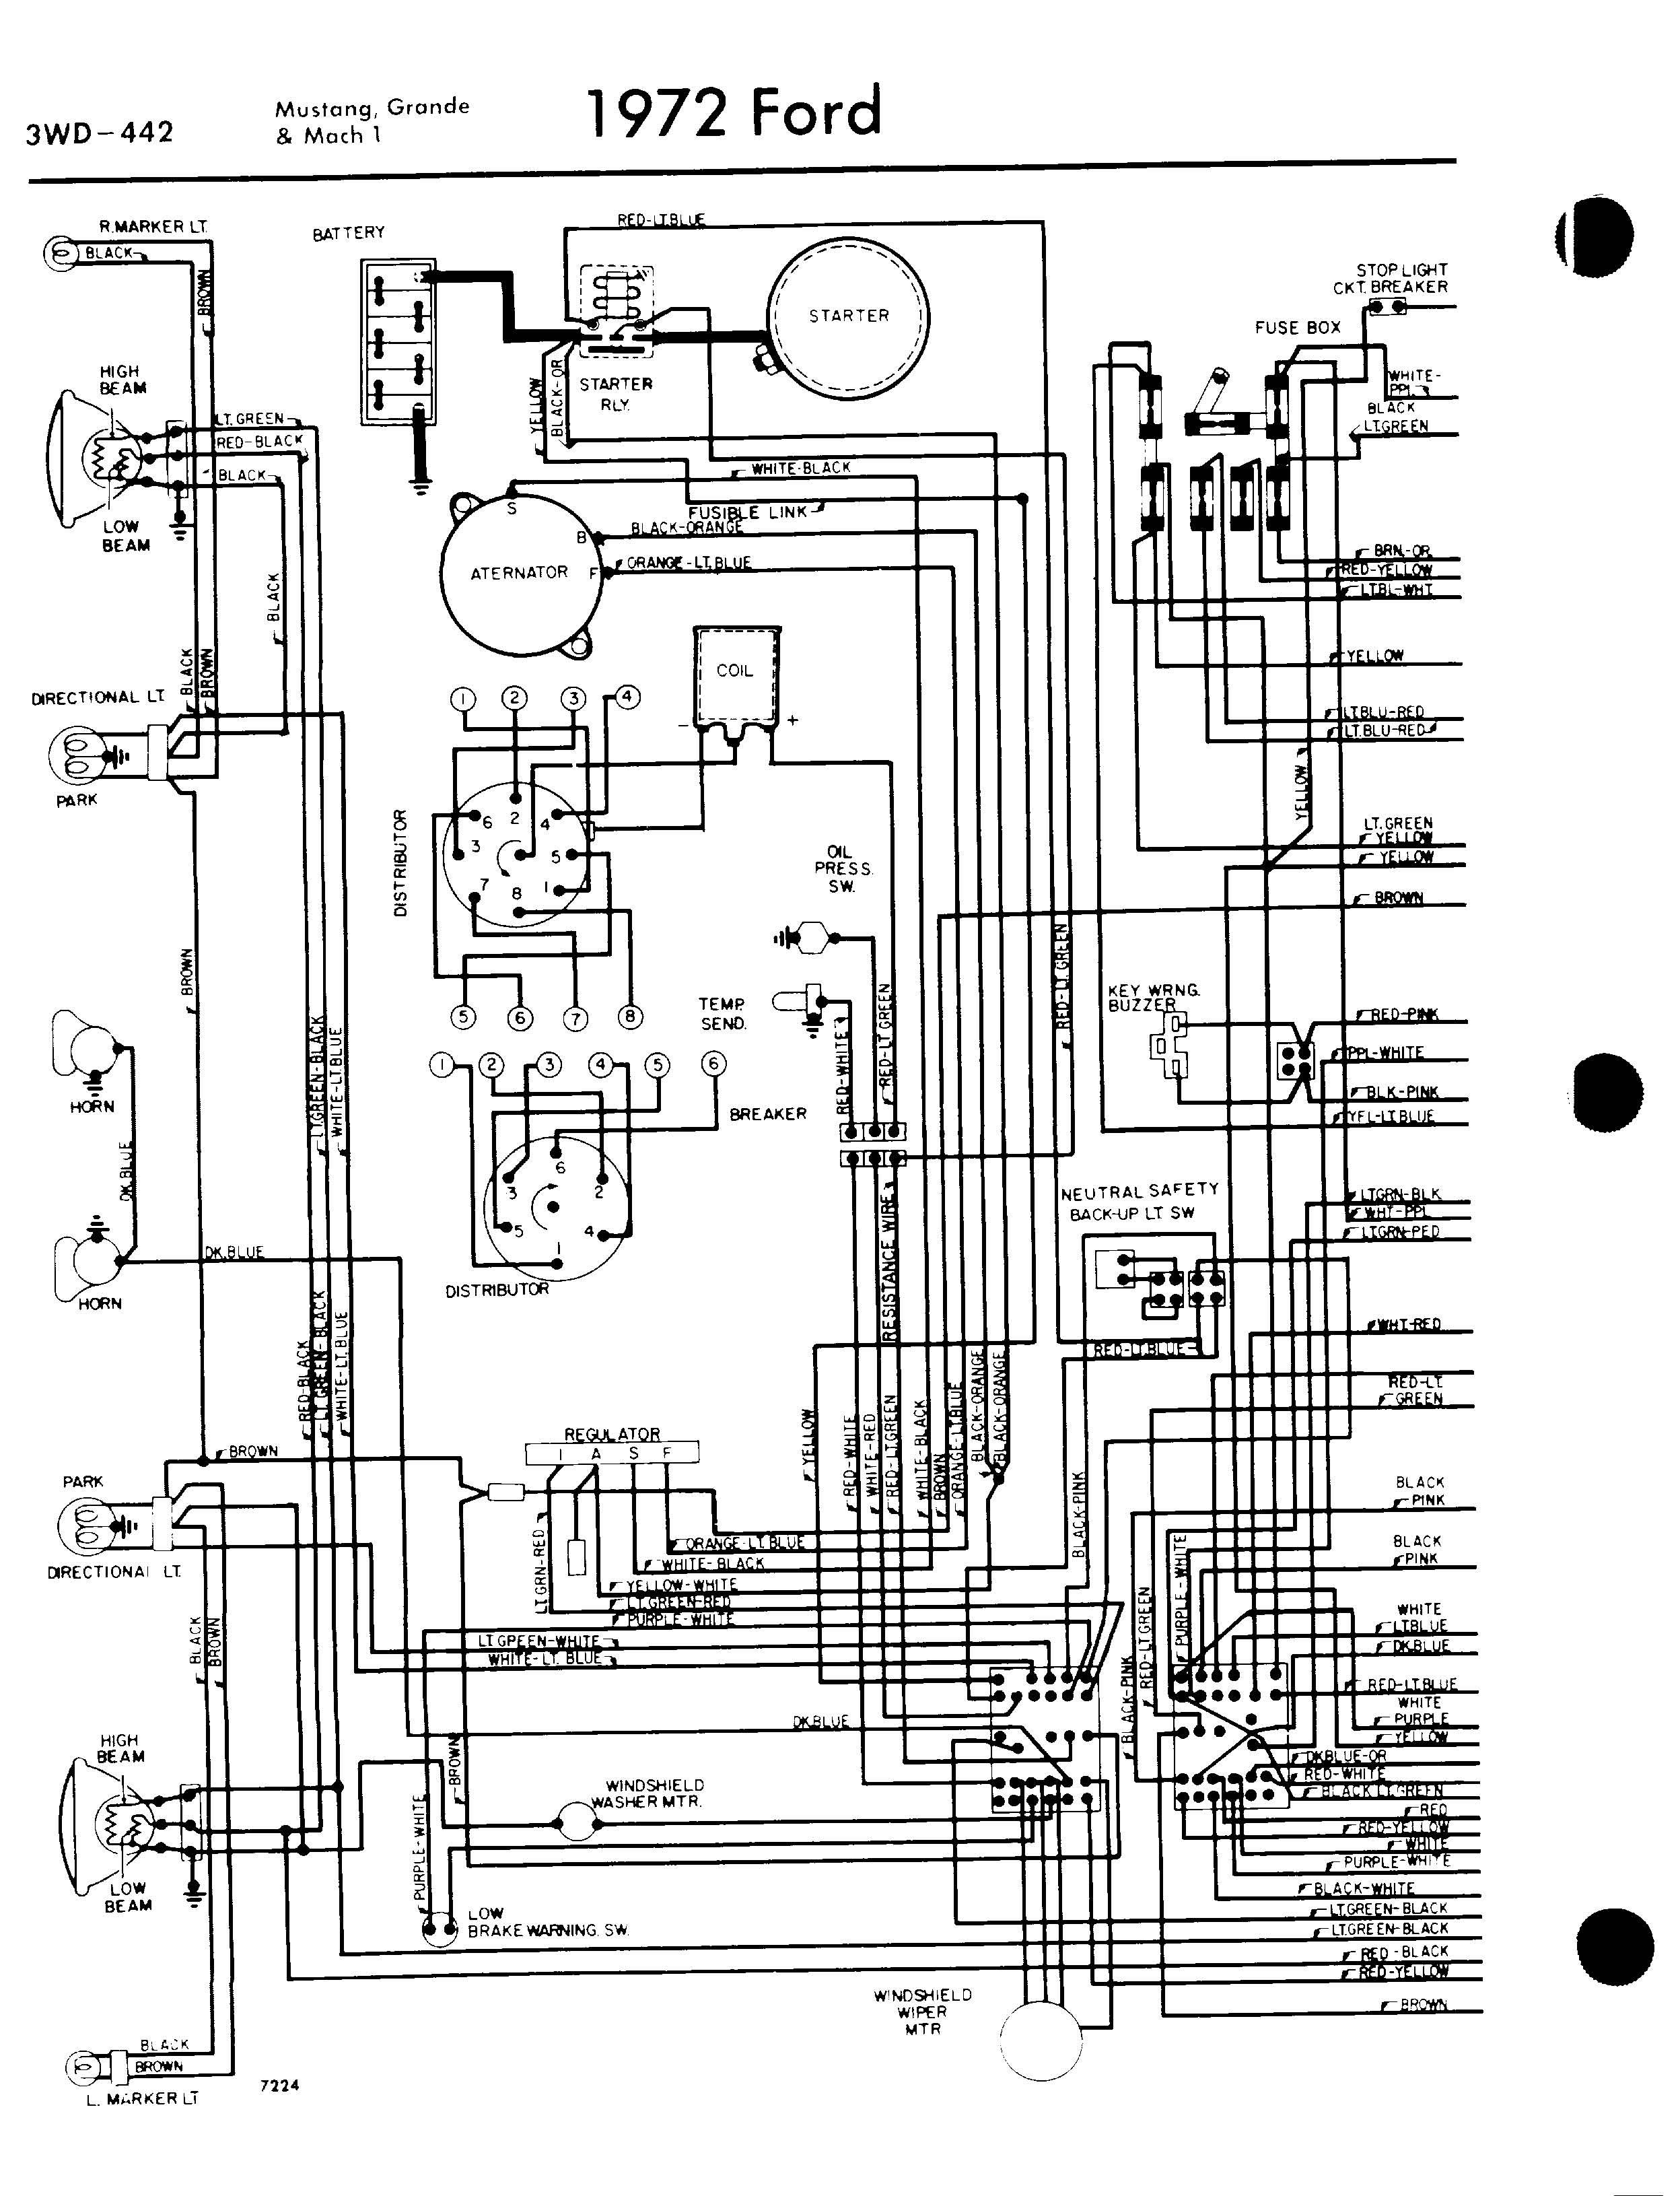 72 mach1 alternator wire harness diagram yahoo search results rh pinterest com Under Dash Wiring Diagram for 1968 Mustang 1969 Mustang Wiring Diagram Online